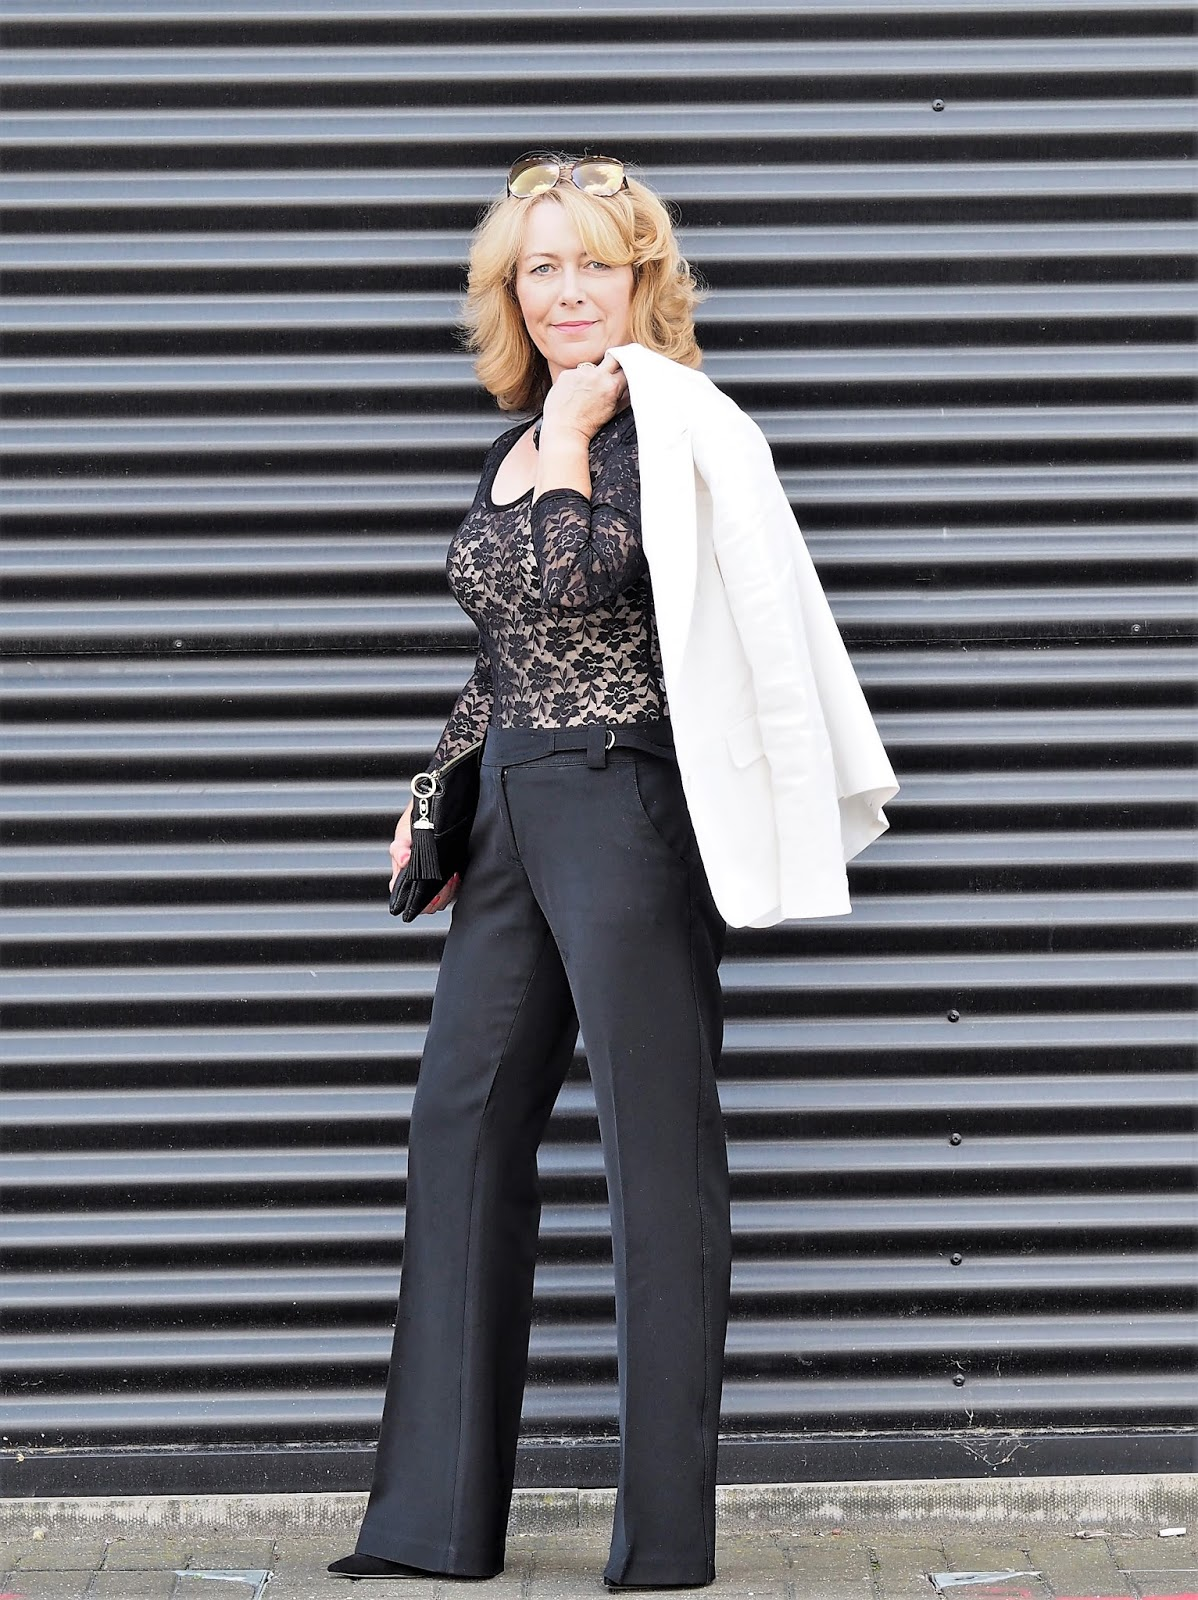 Laurie Bronze from Vanity and Me in black lace top and elegant black tailored trousers